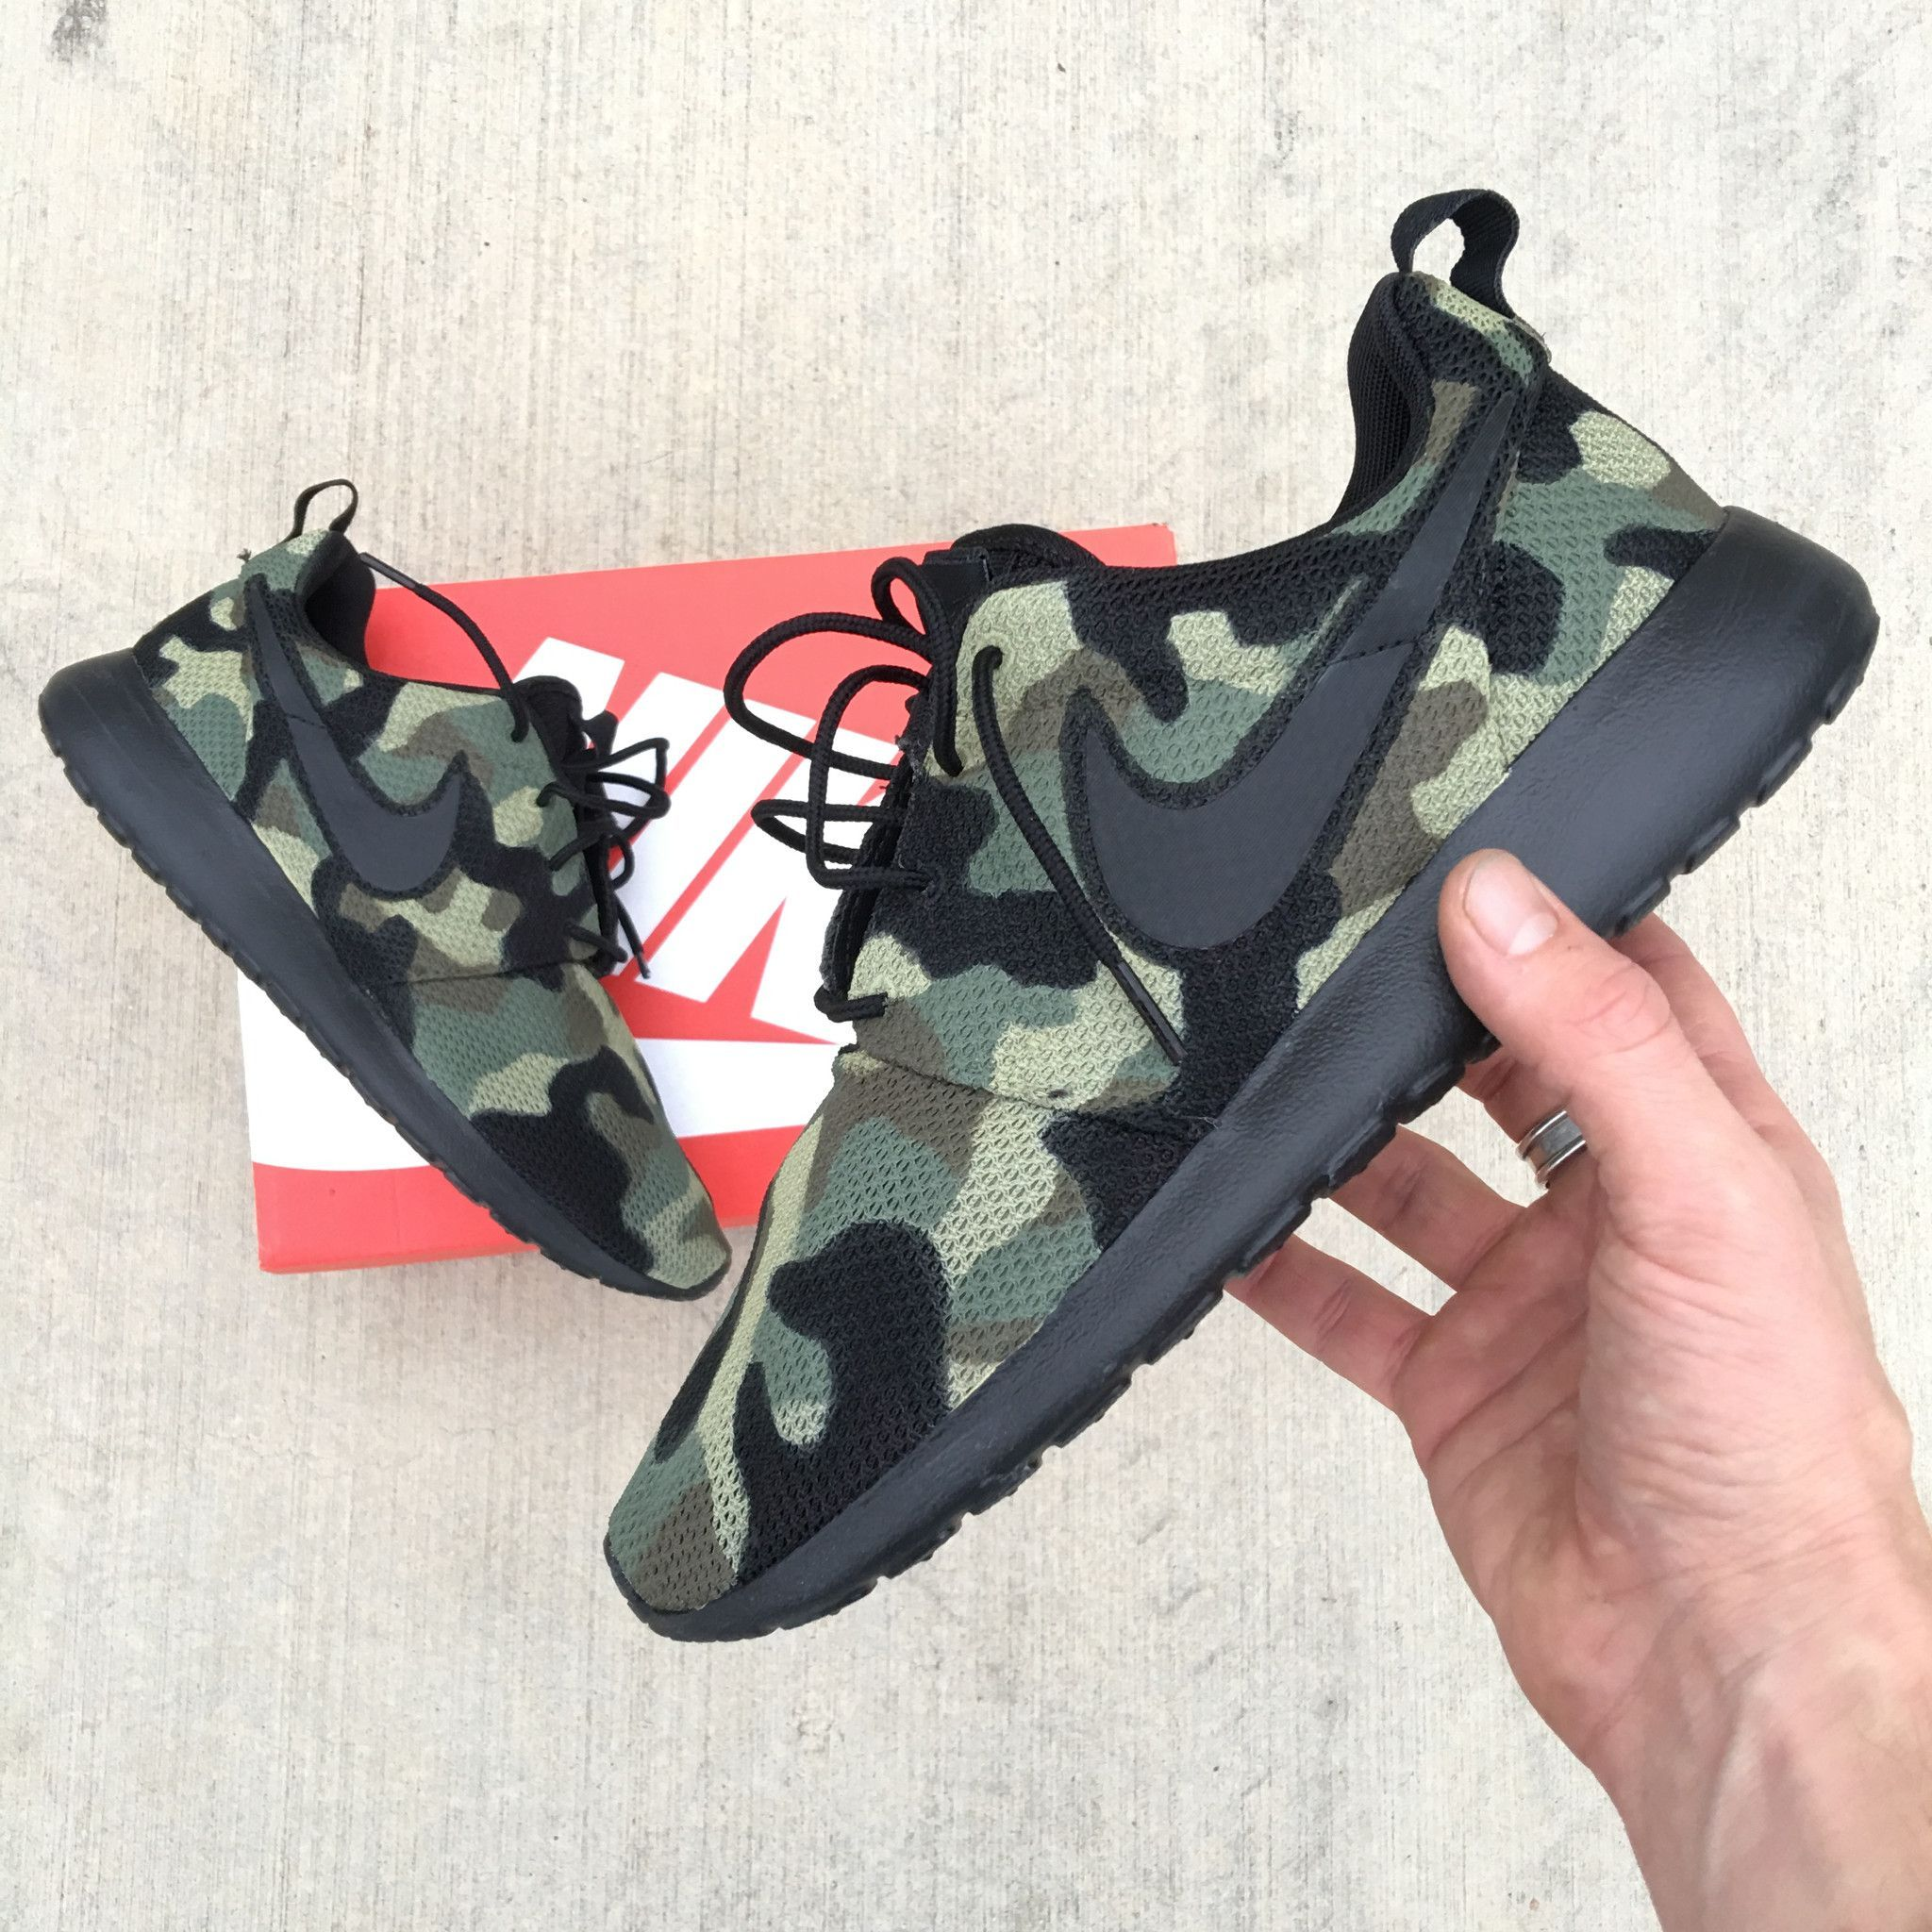 d58b141929b21 Custom painted Nike Roshe One. Camo. These shoes feature the black sole.  Paint is 100% permanent and will never come off. Price includes shoes &  artwork.